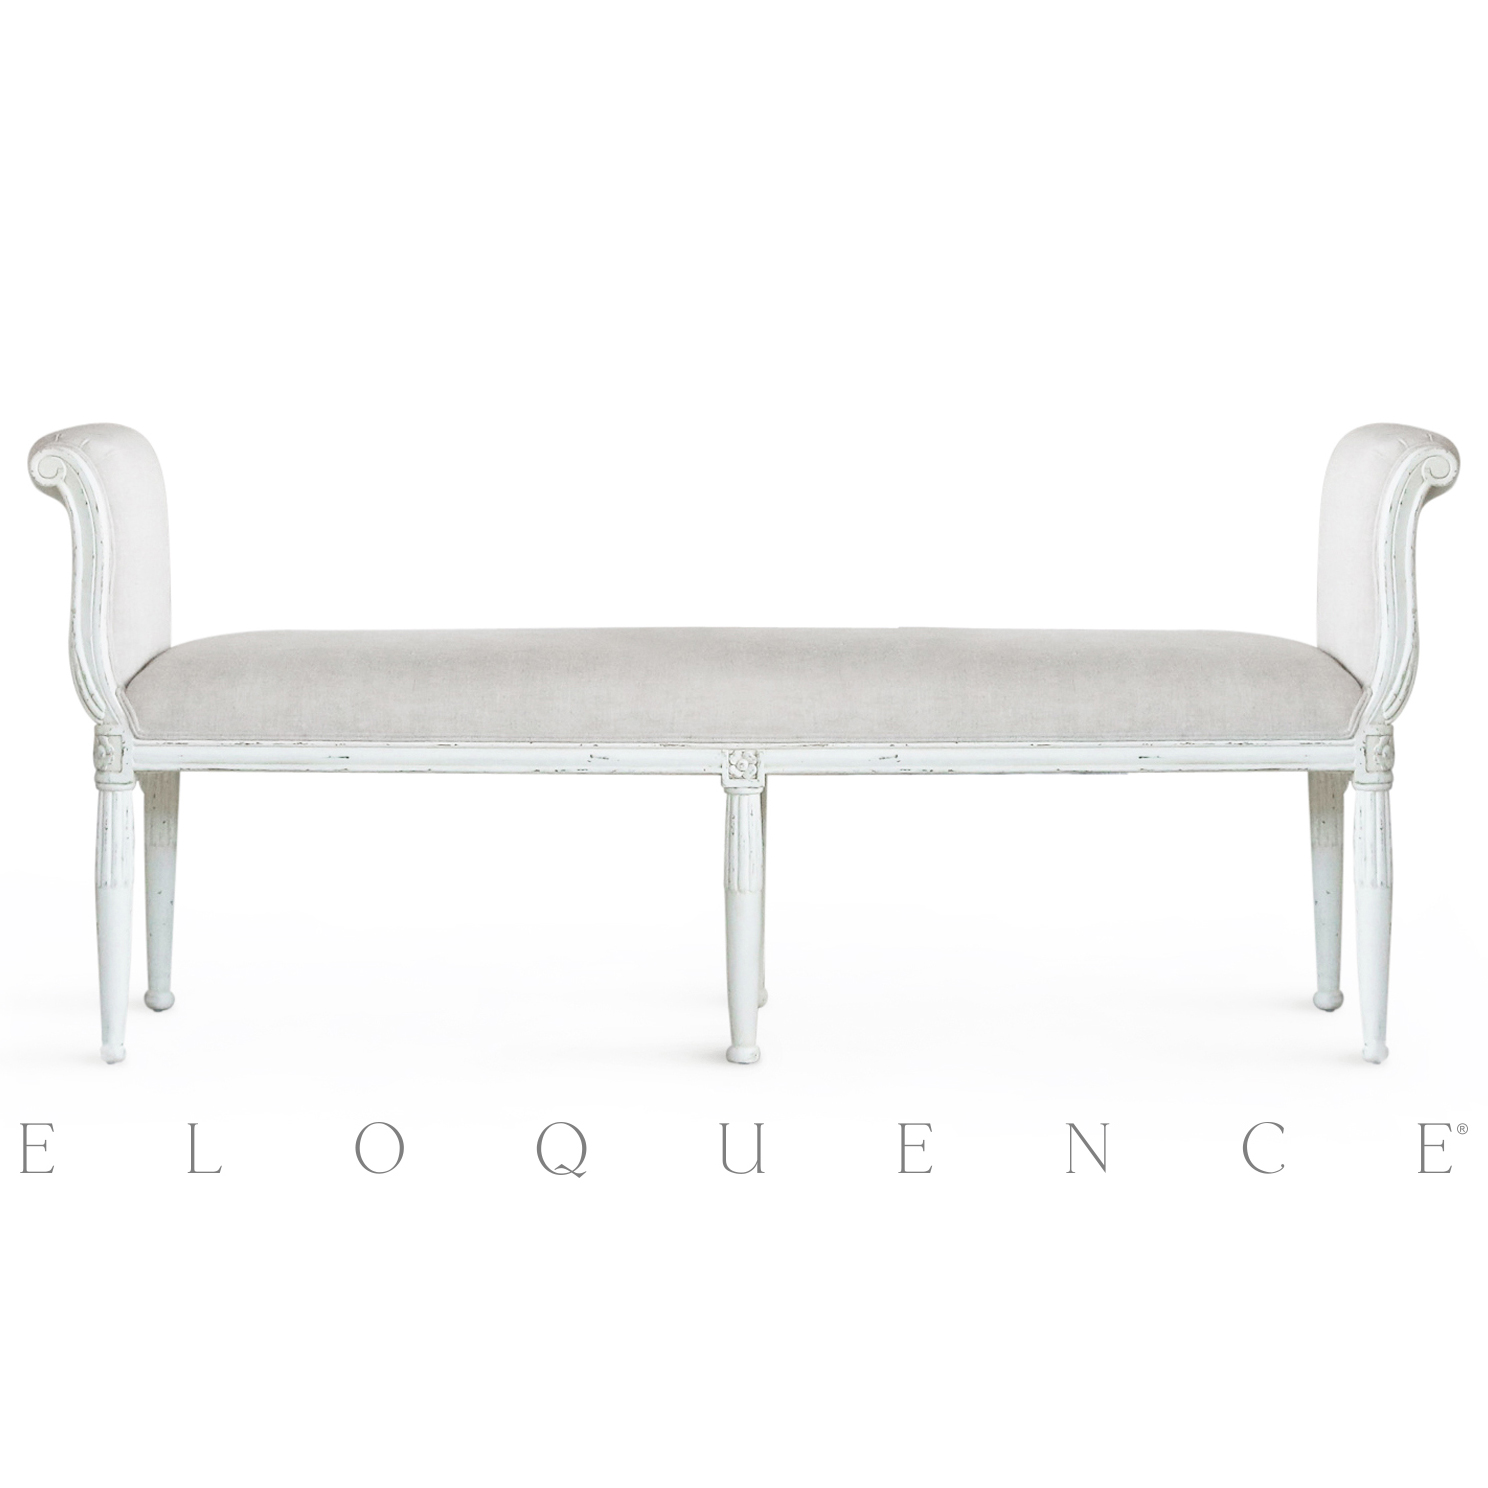 Eloquence® Grande Mademoiselle Bench in Antique White